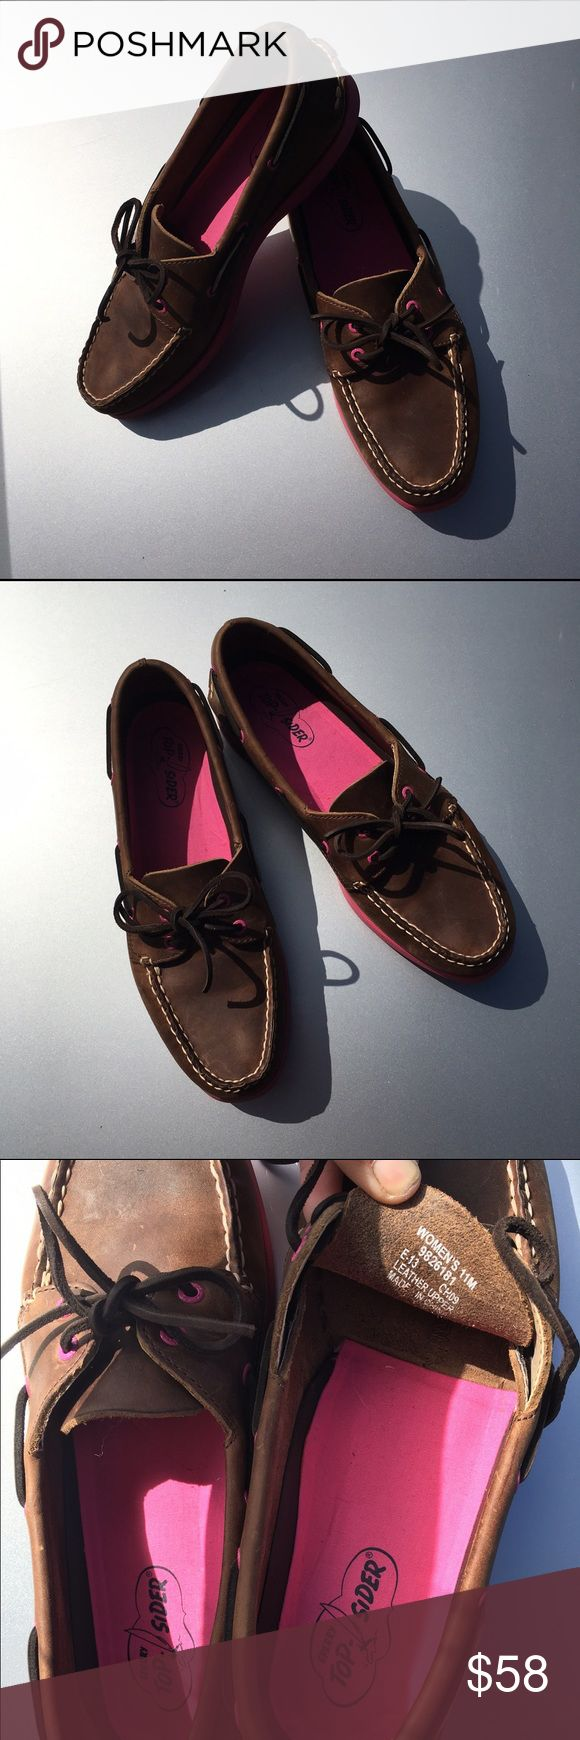 Sperry TopSiders tagged size 11! IMO run smaller! Cute brown Sperry TopSiders size 11  Minimal wear!! Good gently used condition! Love these shoes! Worn 3-4 times. Show light wear, but imo no major flaws!! IMO they run smaller/narrower! I'm usually a 9.5 in Sperry and the width is good for me! Just a bit too big! Kinda fit me like a 10-10.5 would? I do not recommend for a true size 11, but I cannot guarantee size/fit! I will list according to size tag! I cannot be responsible if these don't…